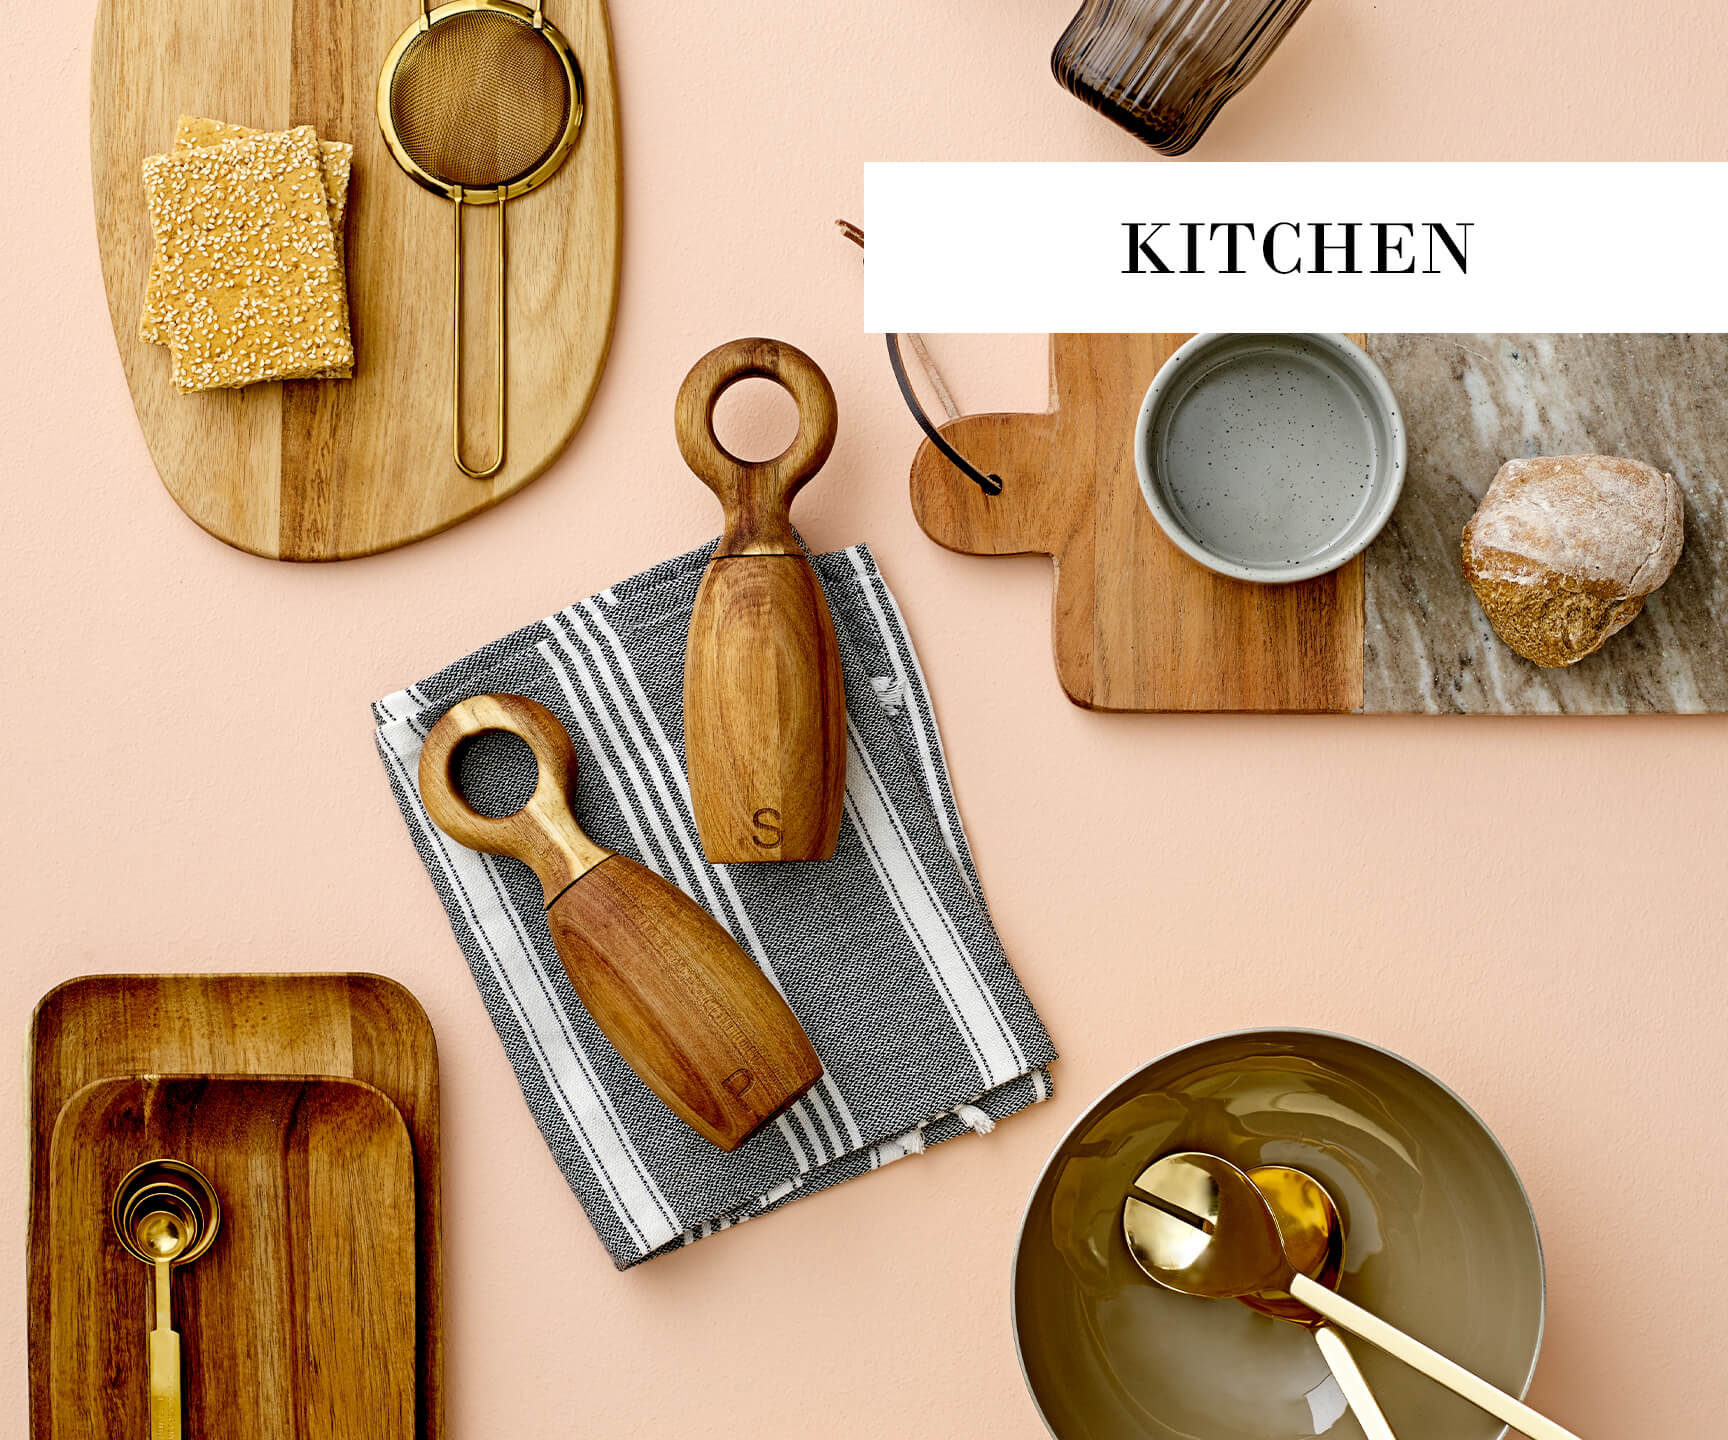 bloomingville_new2018launch_kitchen